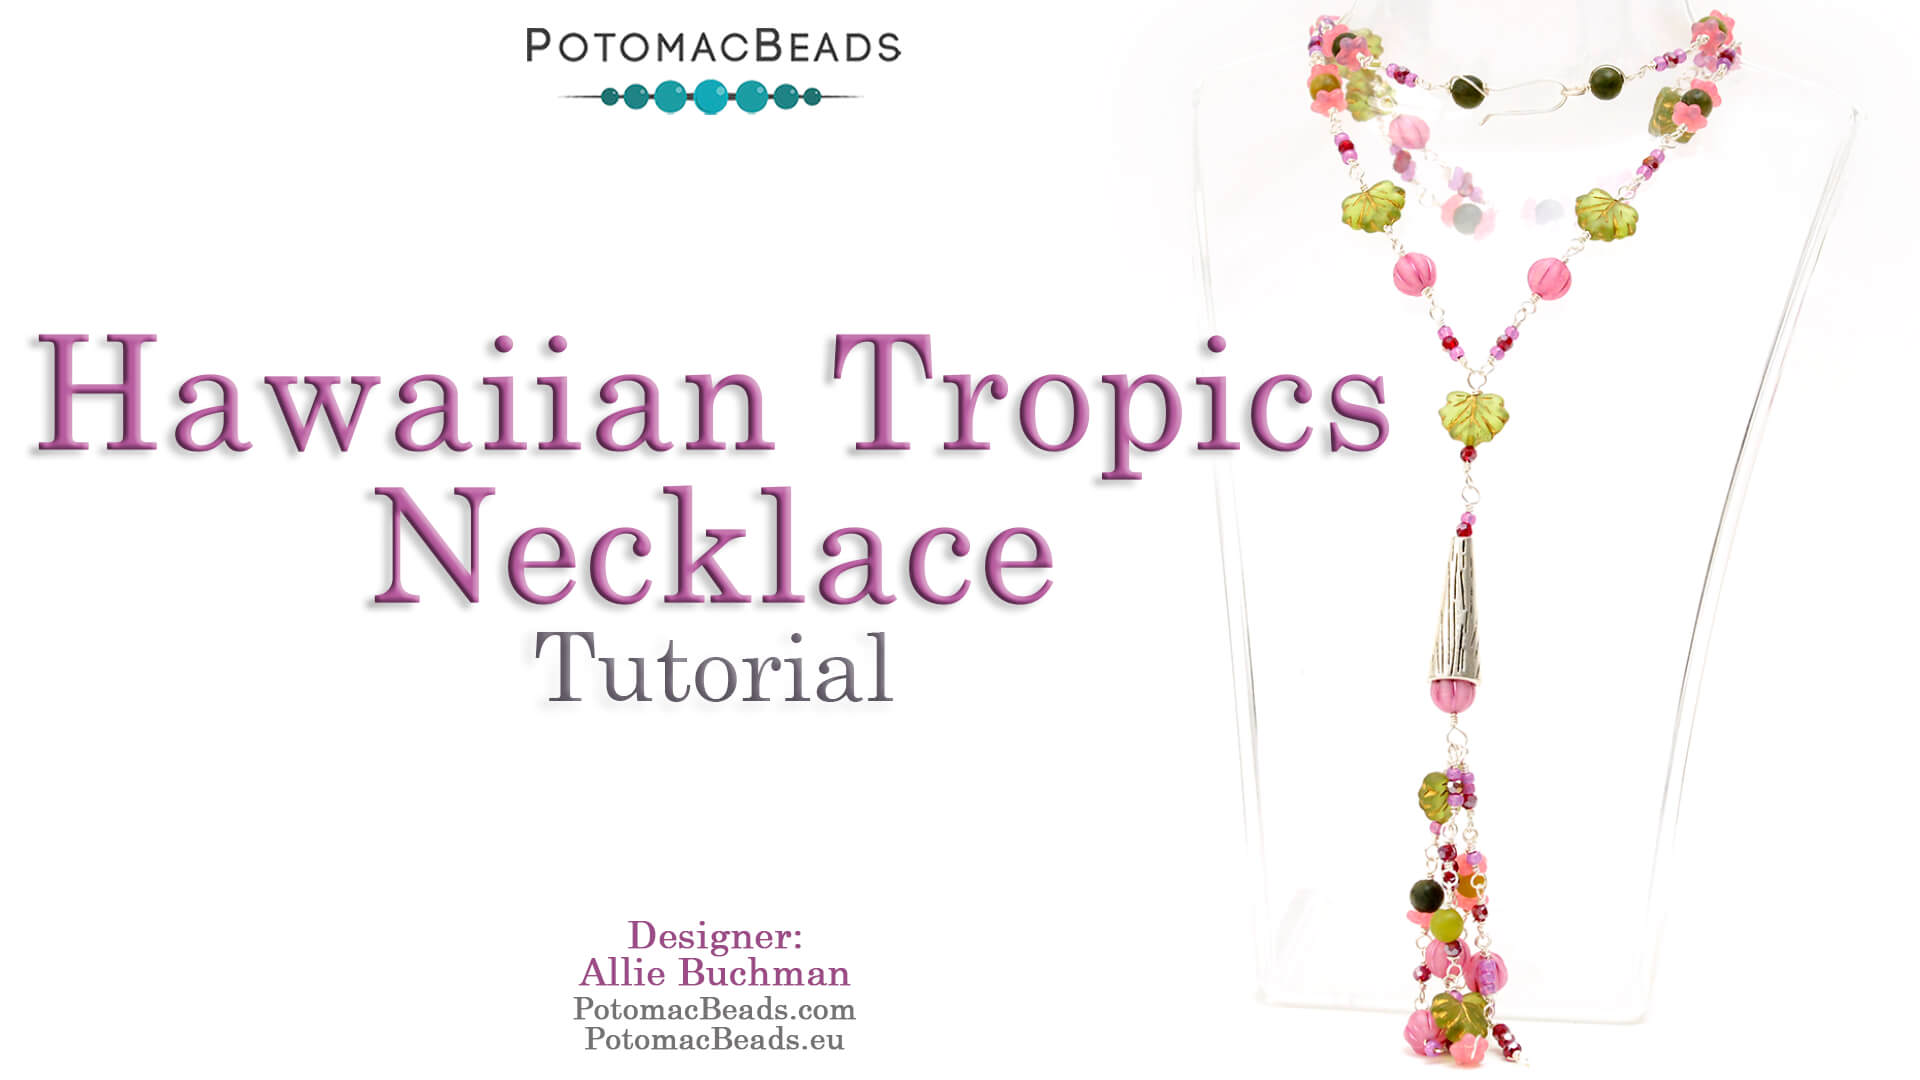 How to Bead Jewelry / Videos Sorted by Beads / Gemstone Videos / Hawaiian Tropics Necklace Tutorial